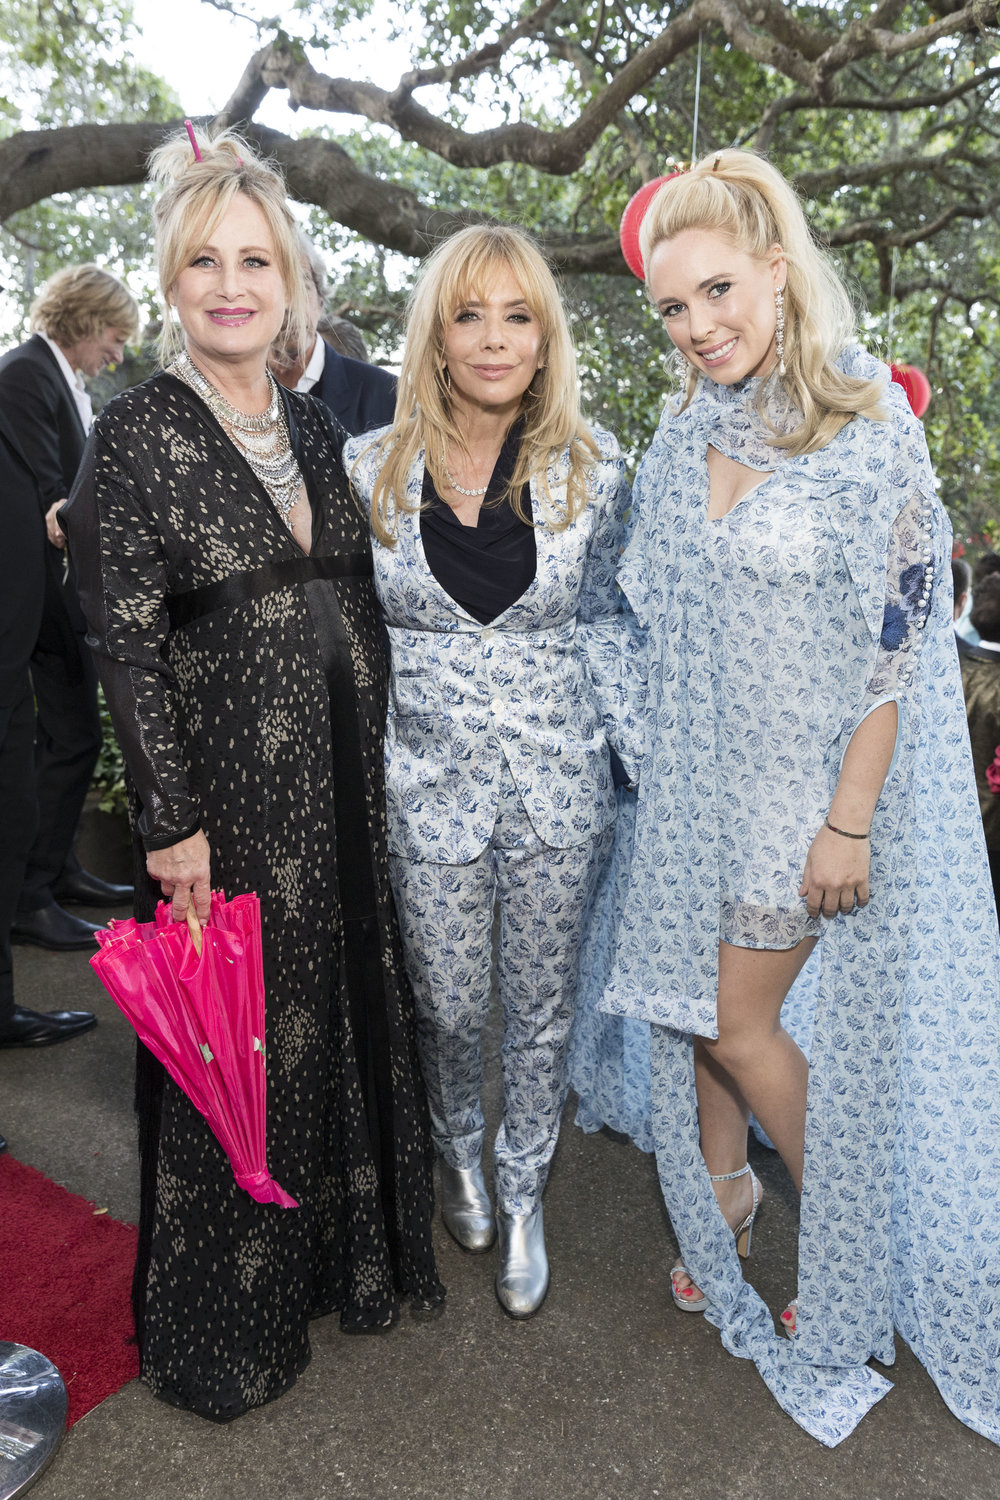 Left to right: Kelly Stone, Rosanna Arquette, and Victoria Noyes Rosanna in JAKE: Chinoiserie Single Breasted Satin Suit  Victoria in JAKE: Chinoiserie Kimono Sleeve Sheath Dress Photo courtesy of Drew Alitzer